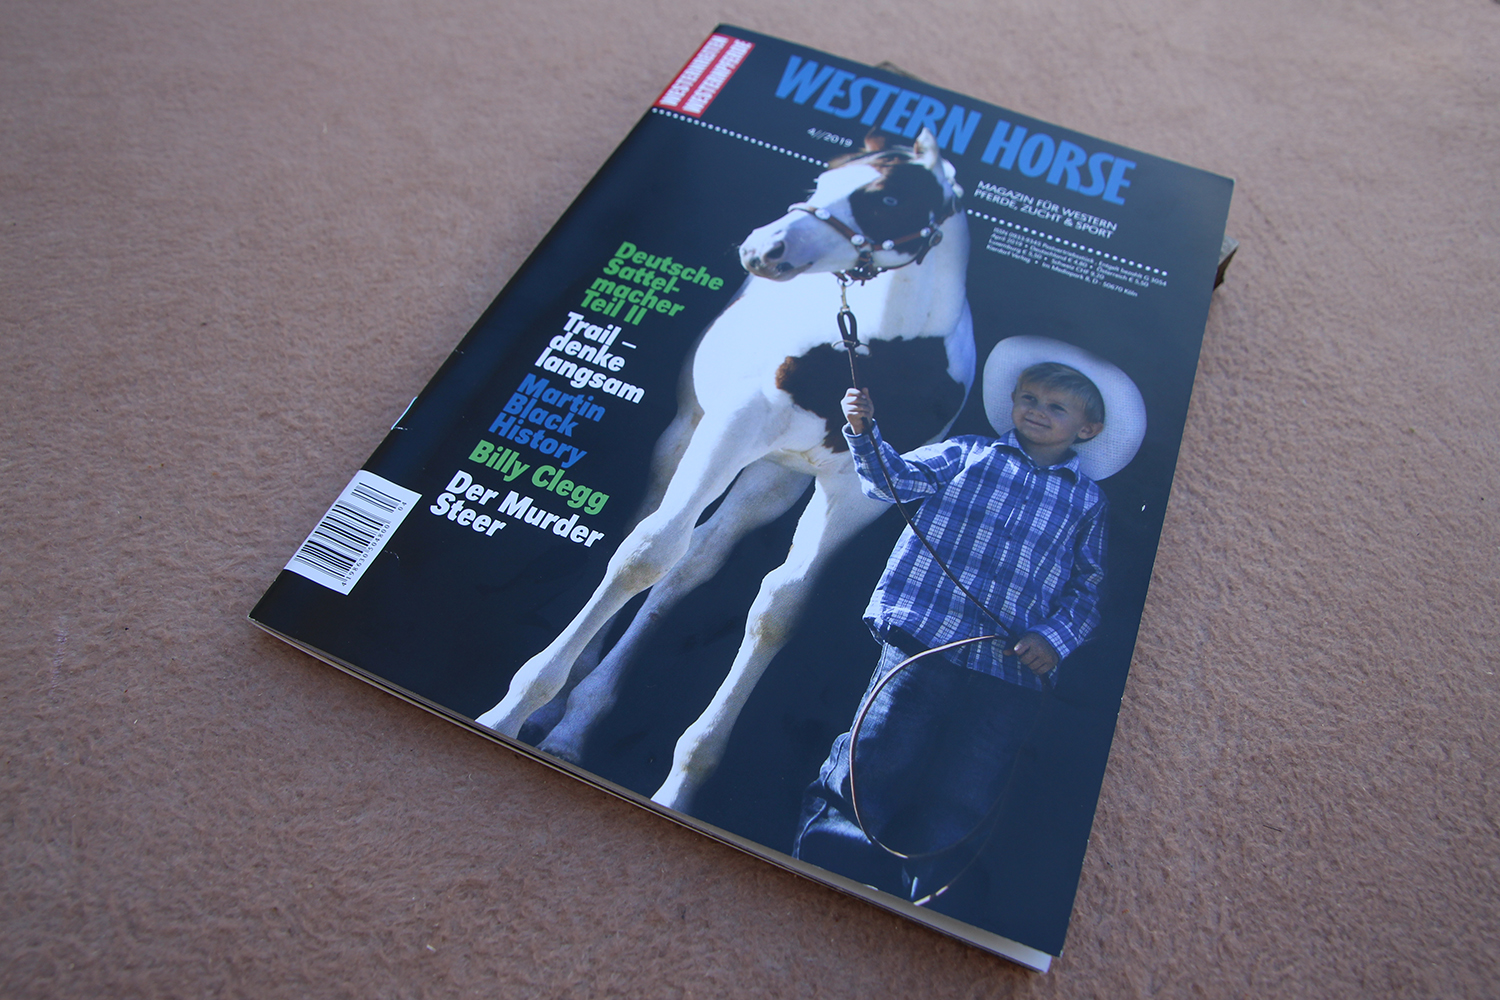 WESTERN Horse April 2019